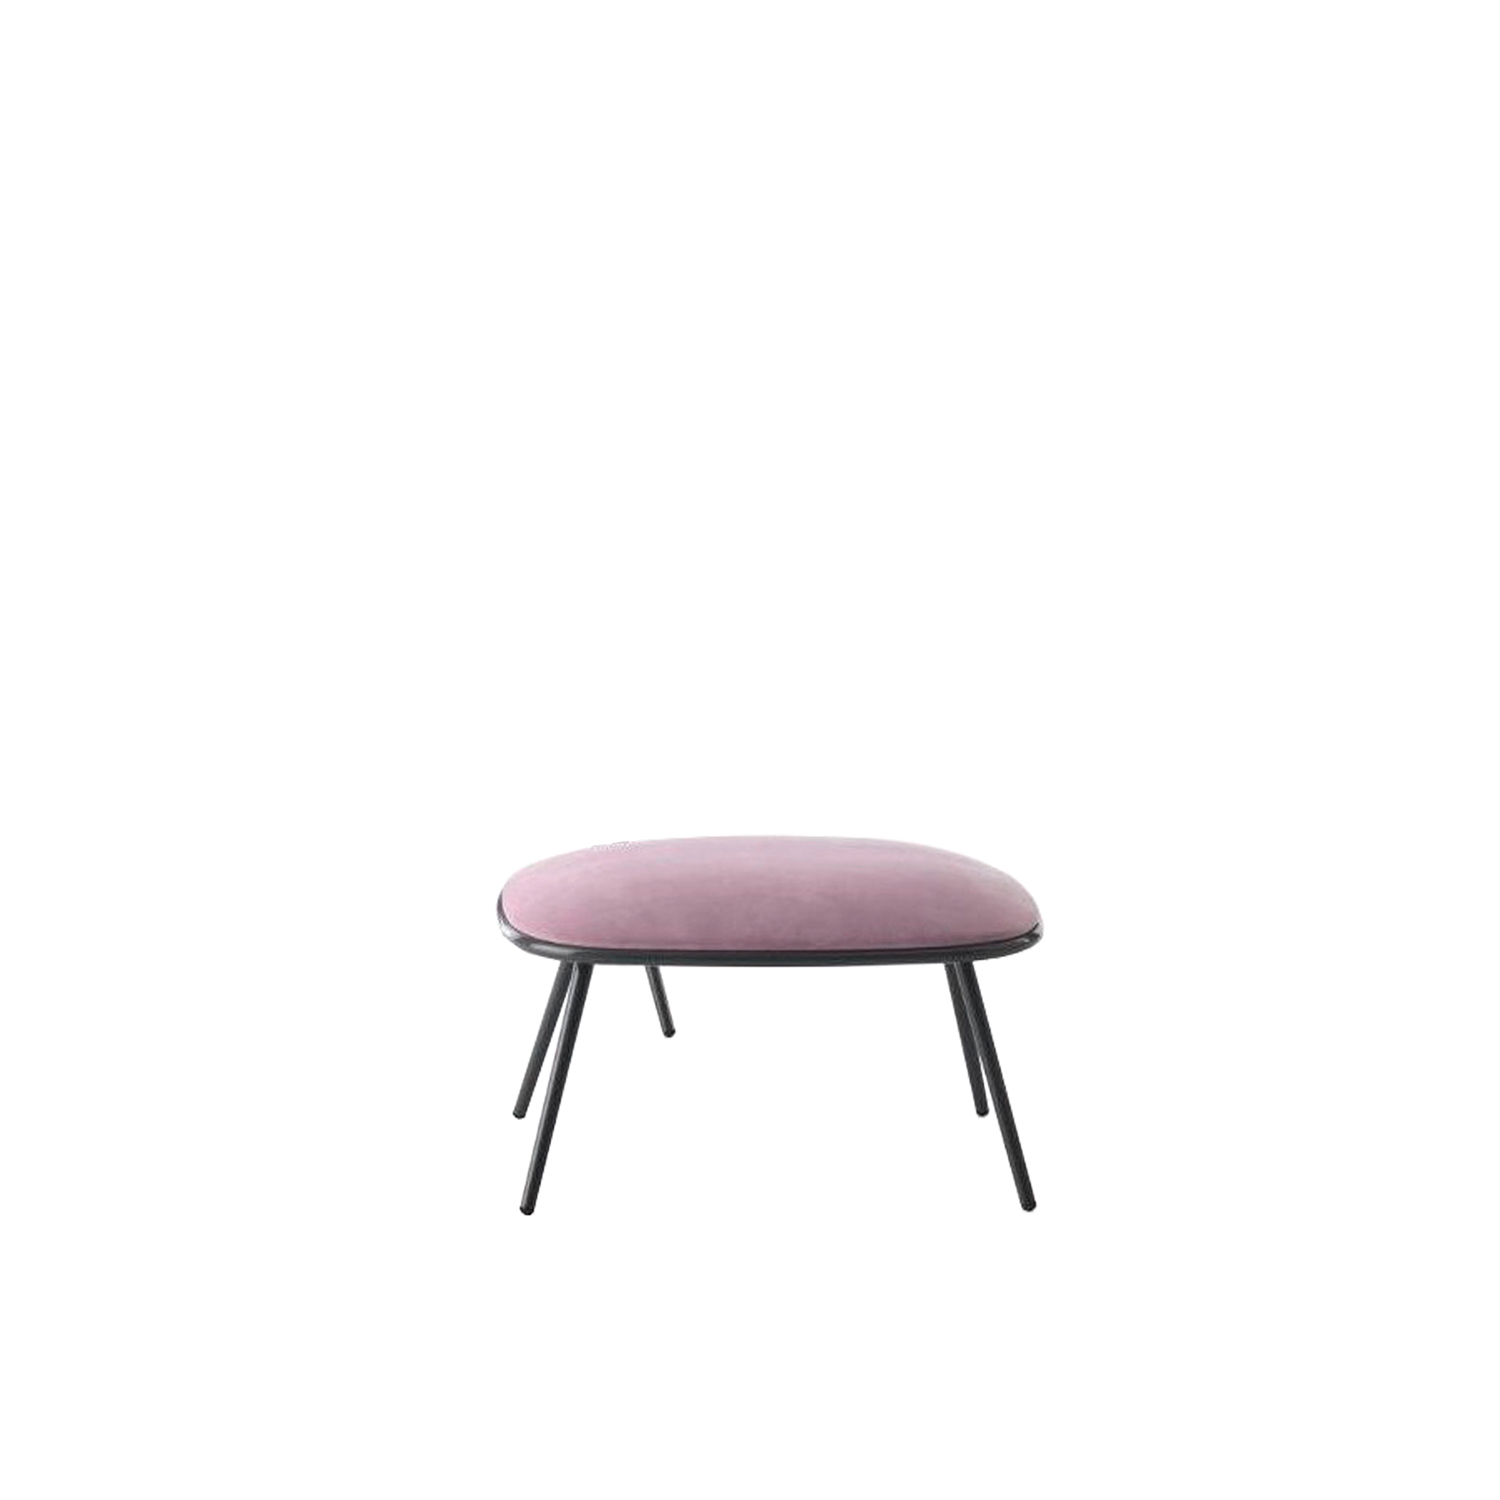 Grace Garden Footstool - Grace is a garden footrest with metal structure and fabric padding, part of the homonymous collection.‎